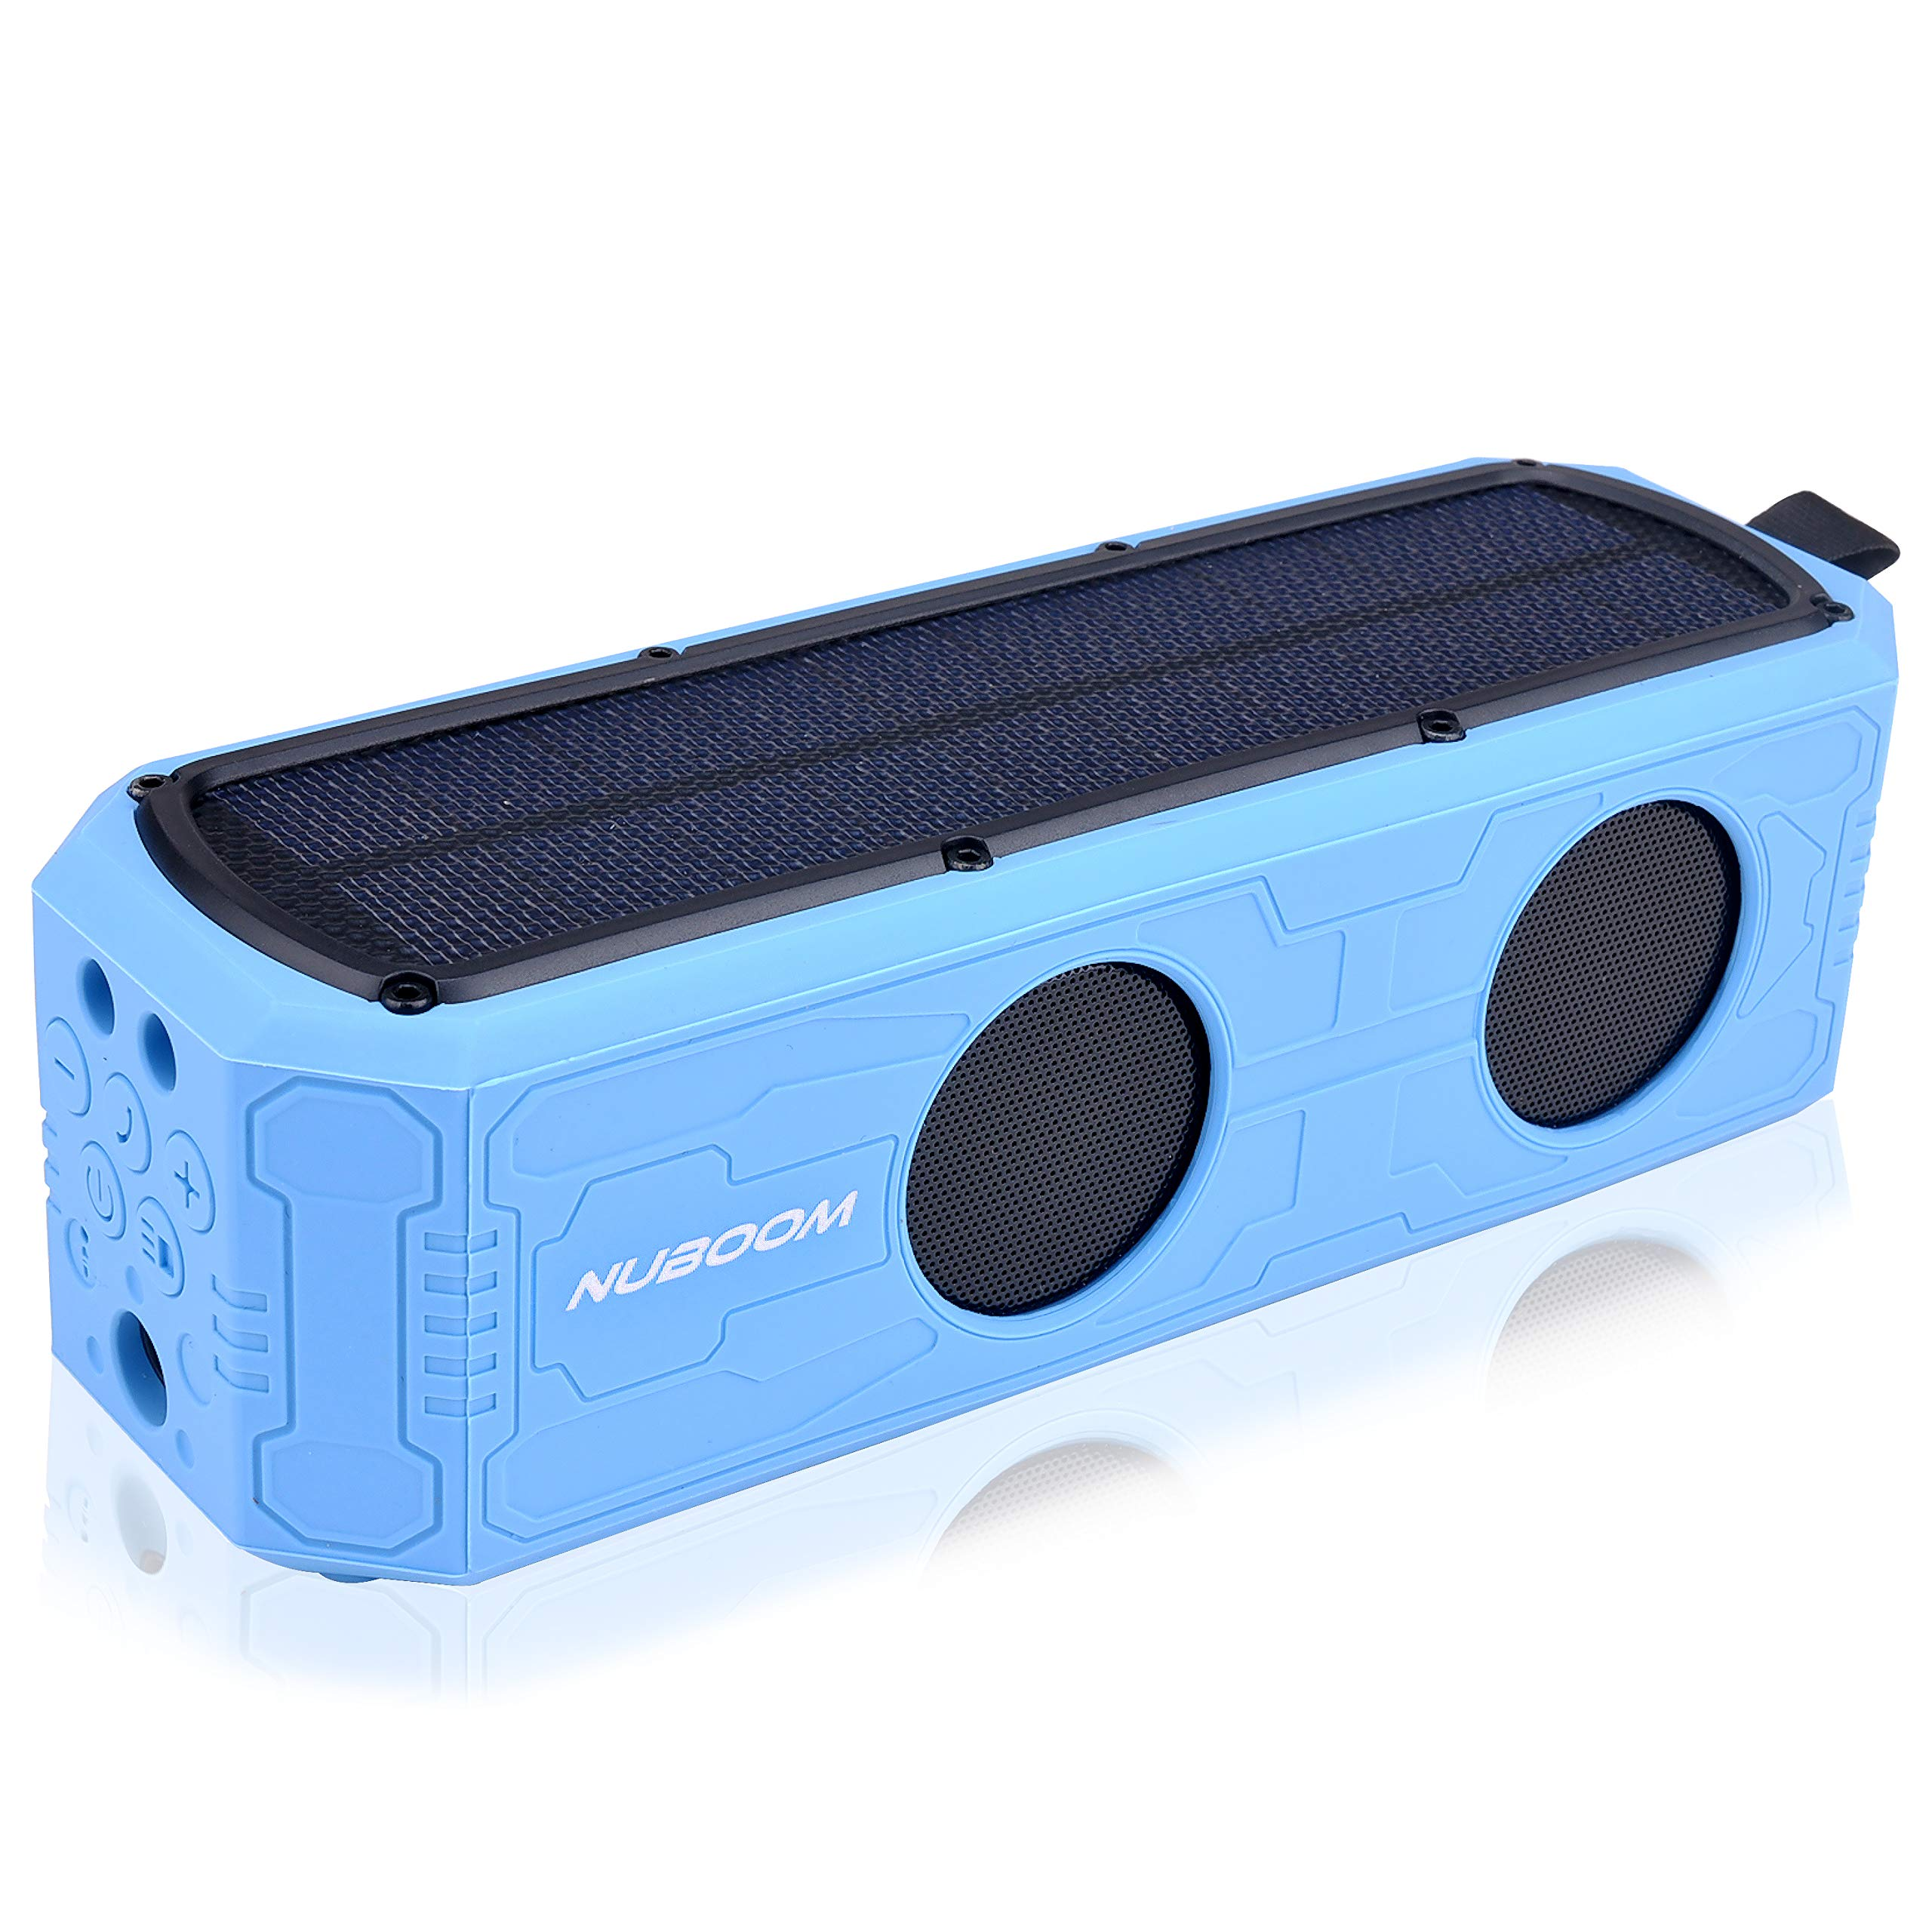 Solar Power Bluetooth Speaker Nuboom Outdoor w. 55+ Hours Playtime, 10W Stereo Subwoofer Bass 4400mAh Power Bank MicroUSB/Solar Charged IPX5 Splashproof and Bluetooth 4.0 Connection (Skylight Blue) by NUNET